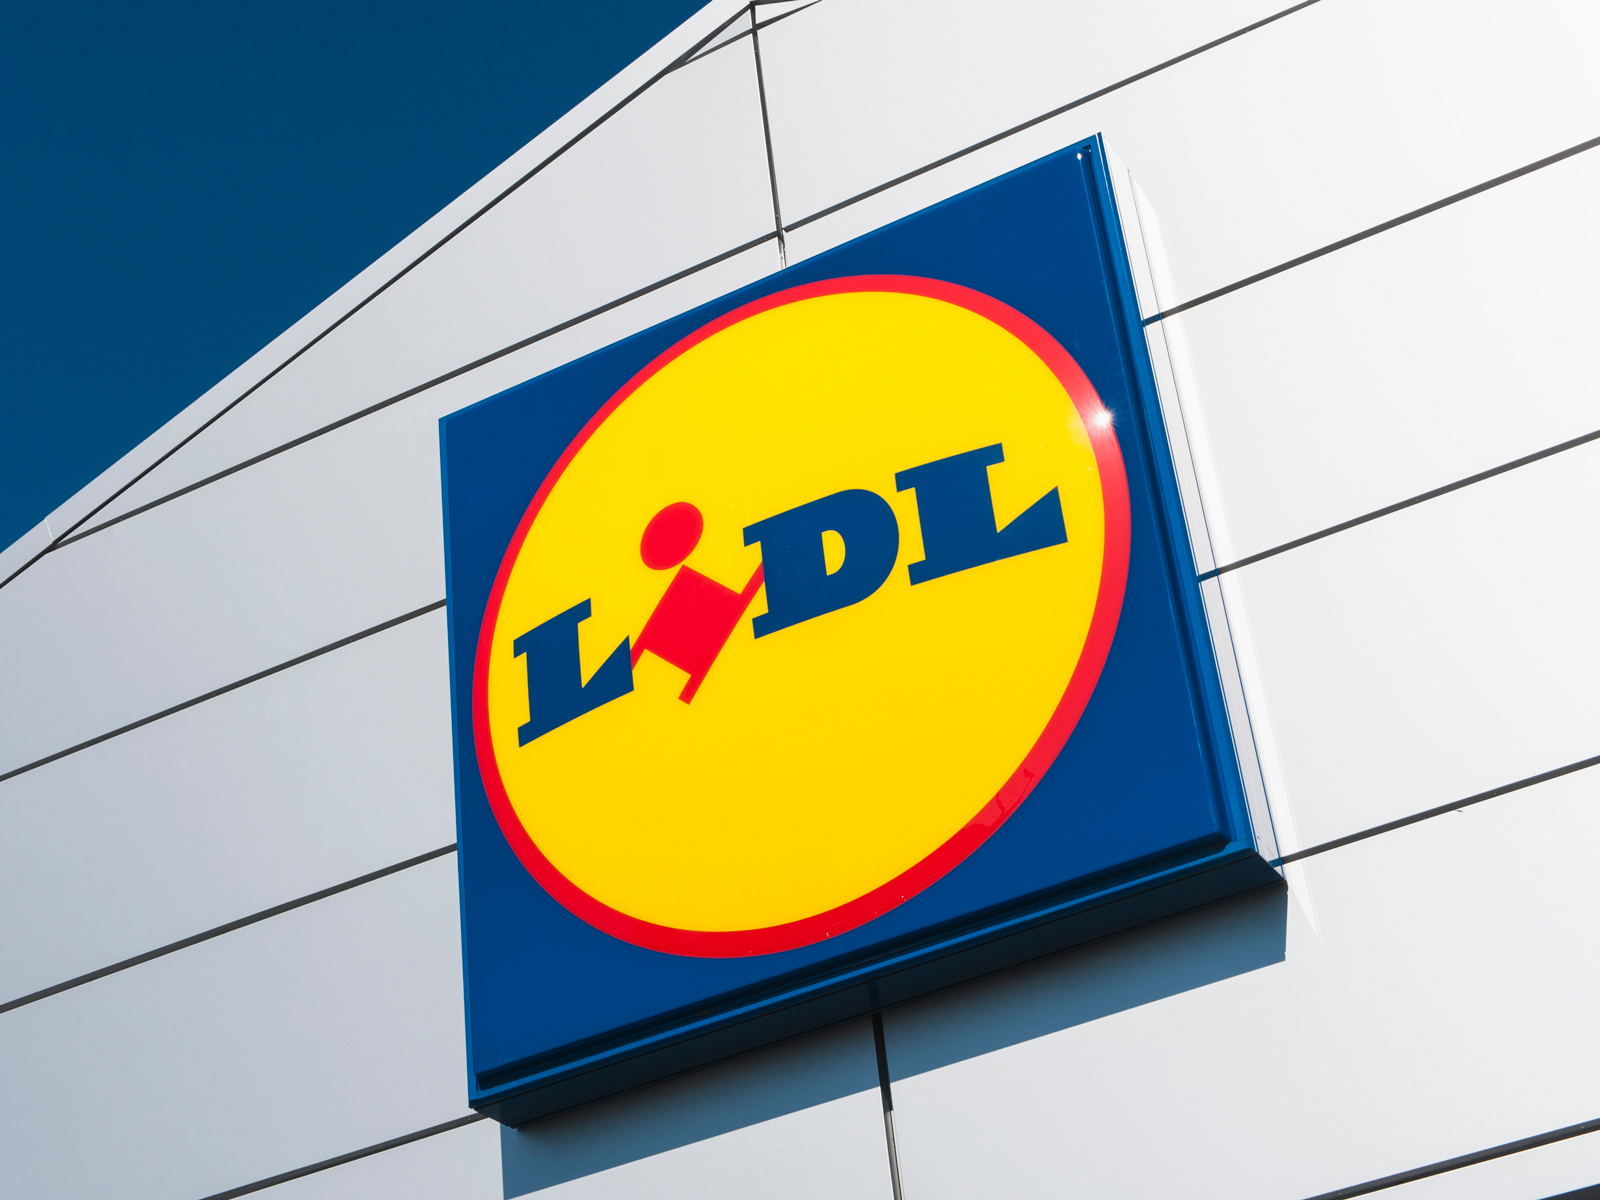 lidl-new-locations-FT-BLOG0519.jpg